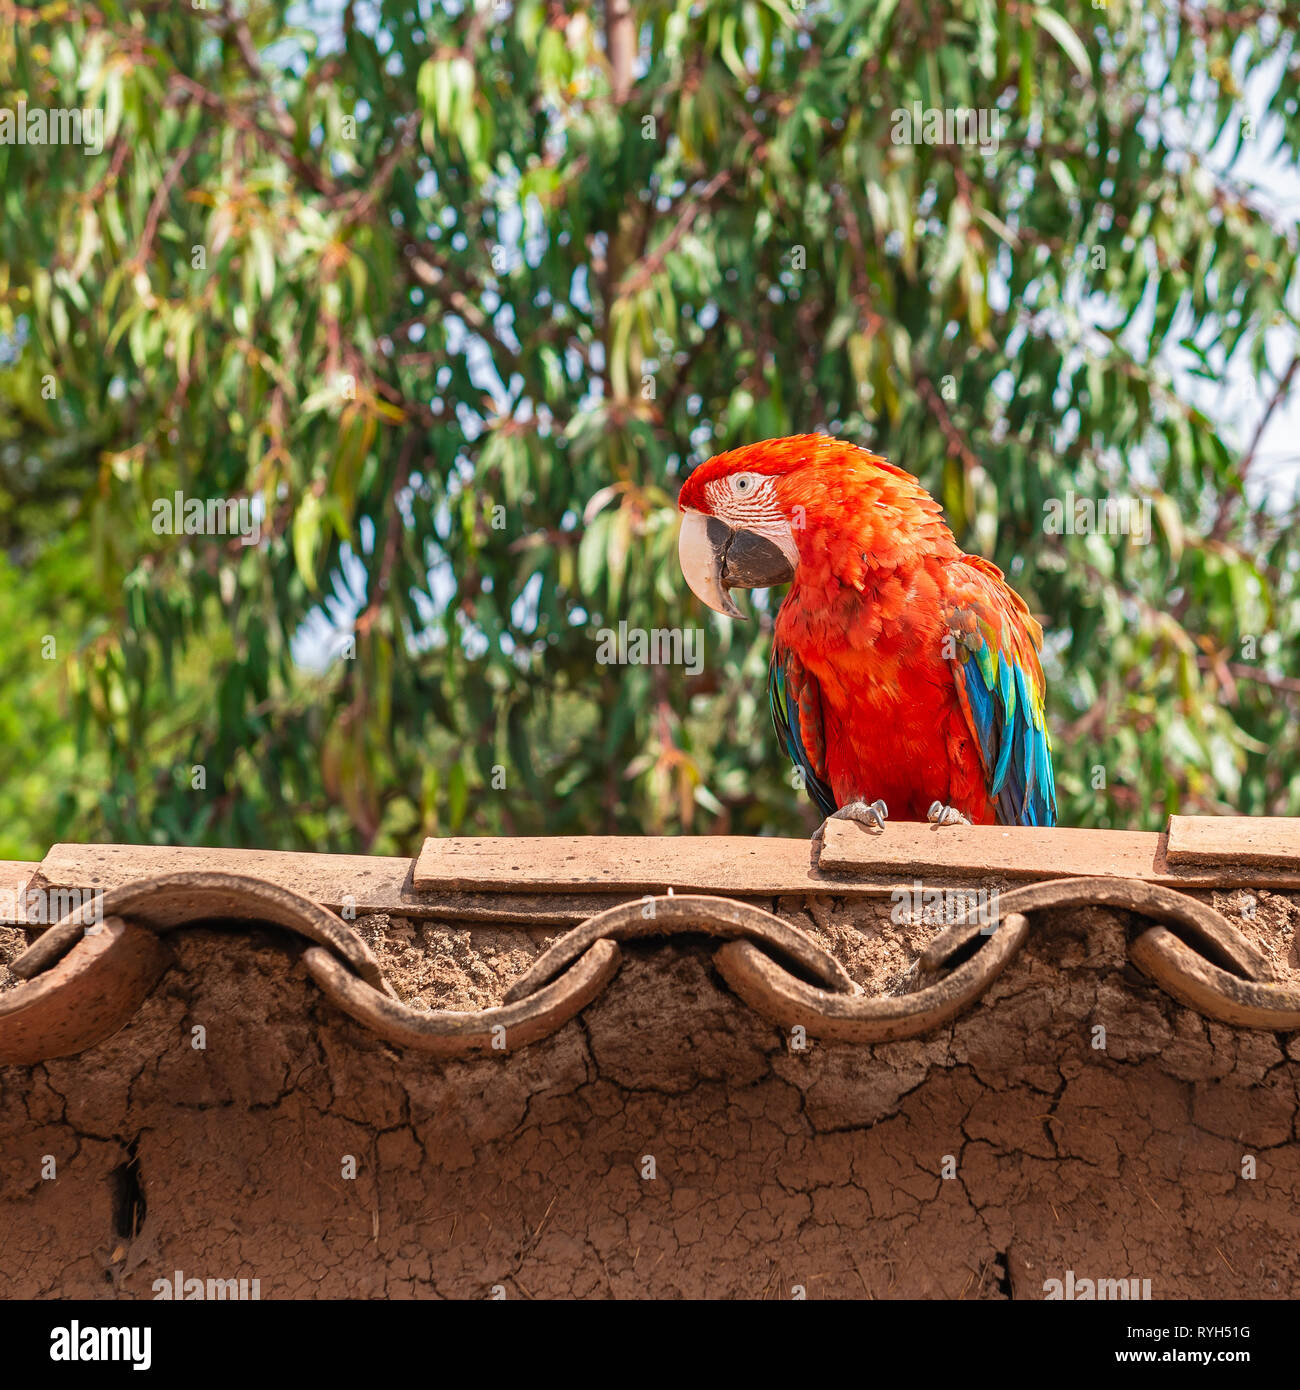 A scarlet macaw (Ara macao) standing on a roof in the tropical rainforest of Peru, South America. - Stock Image